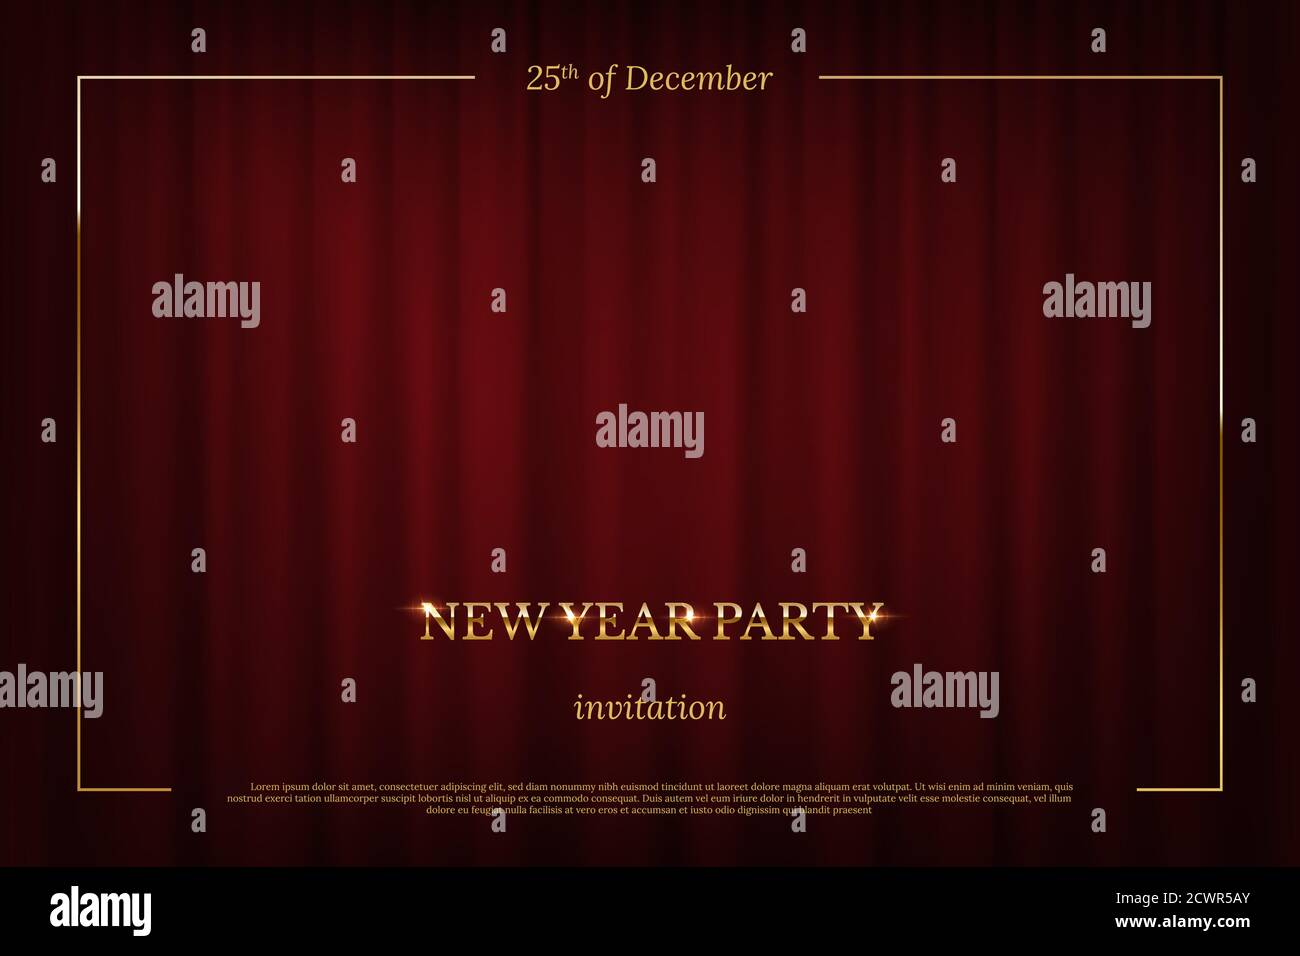 New Year Party invitation design template. Red curtain theater stage Stock Vector